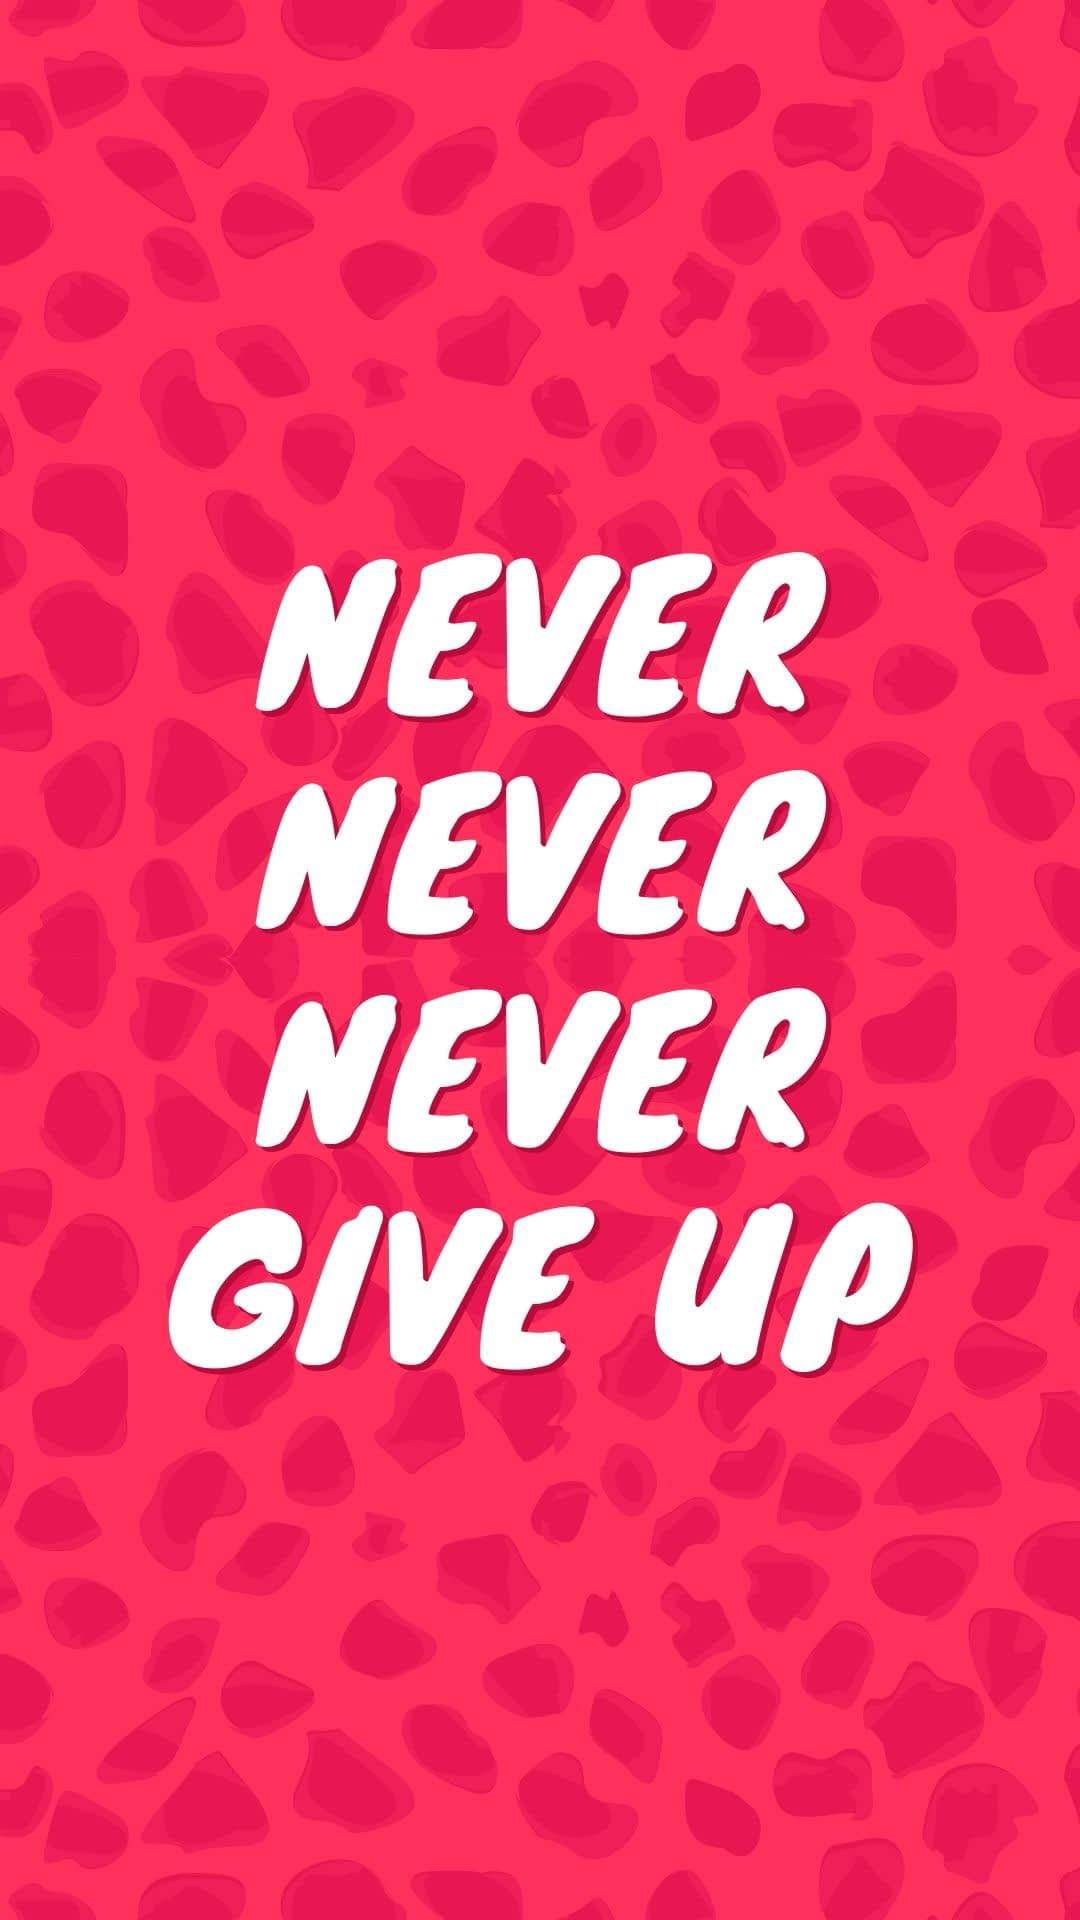 Never, Never, Never give up blog inspiration and cell phone wallpaper